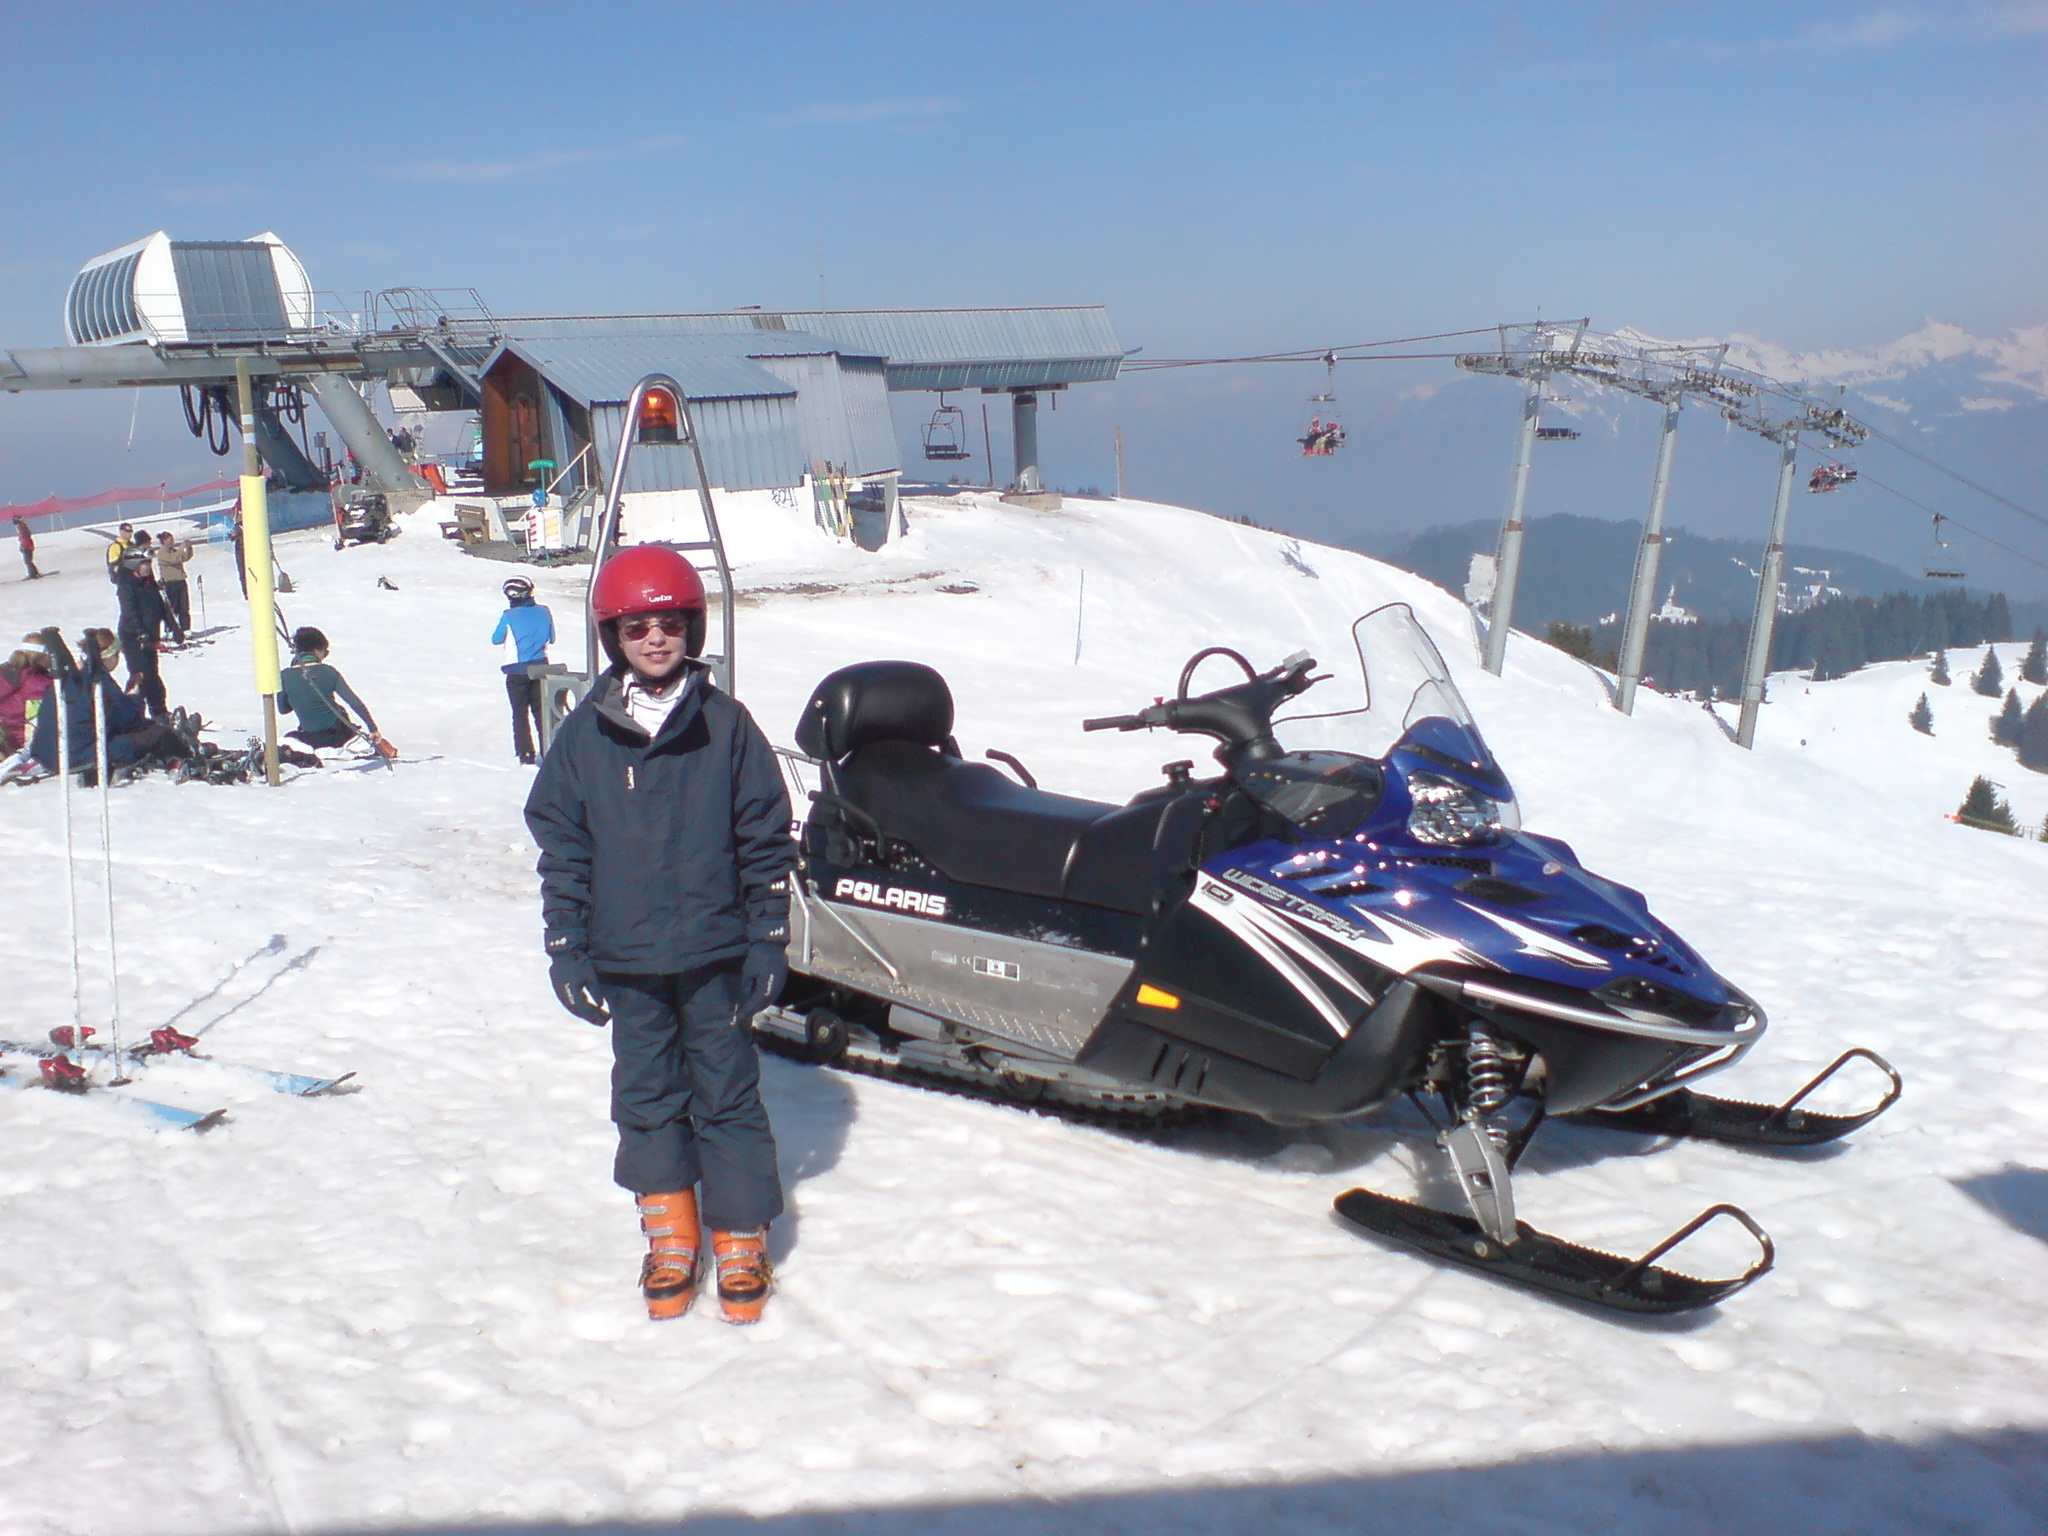 Snowmobile on snowy mountain